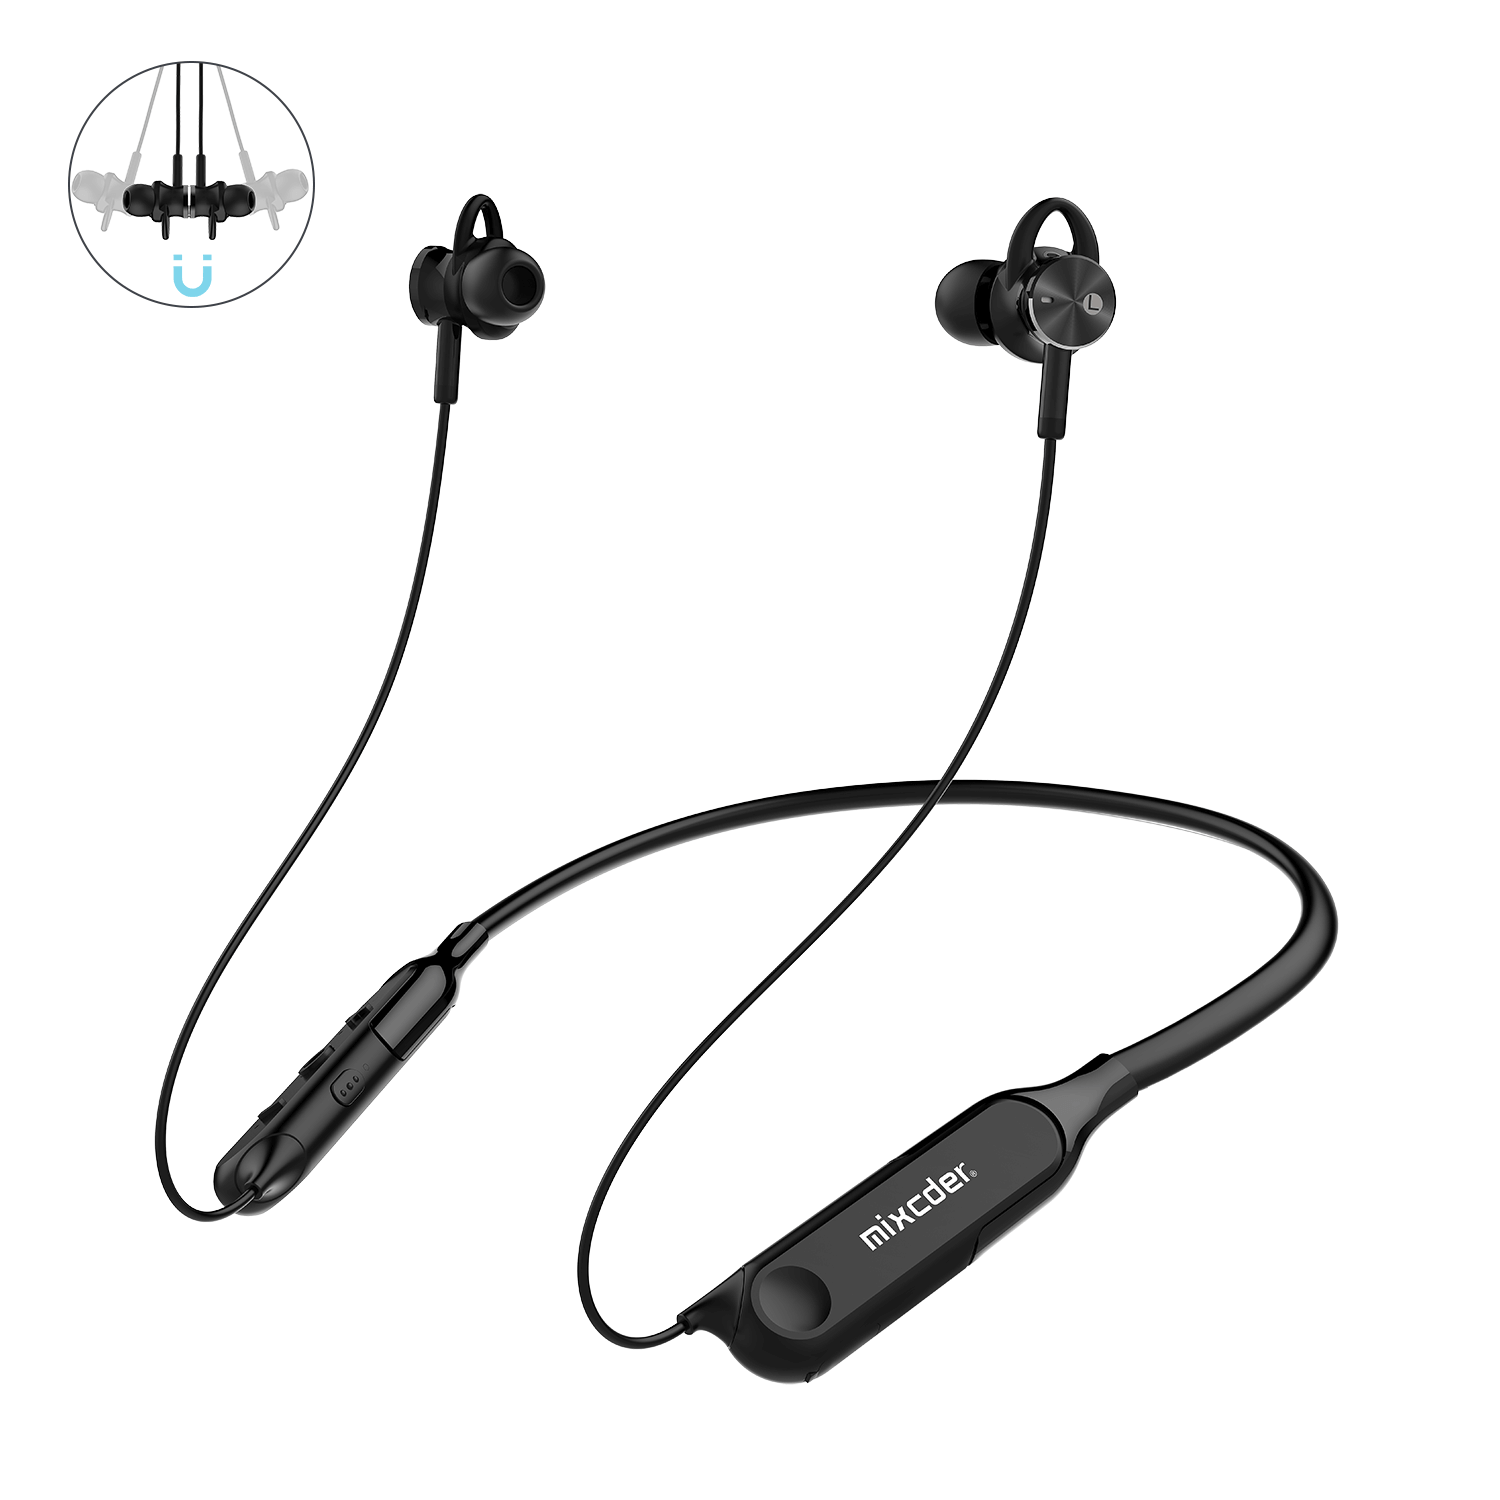 Mixcder RX Active Noise Cancelling Wireless Bluetooth Earphones with Magnetic Design